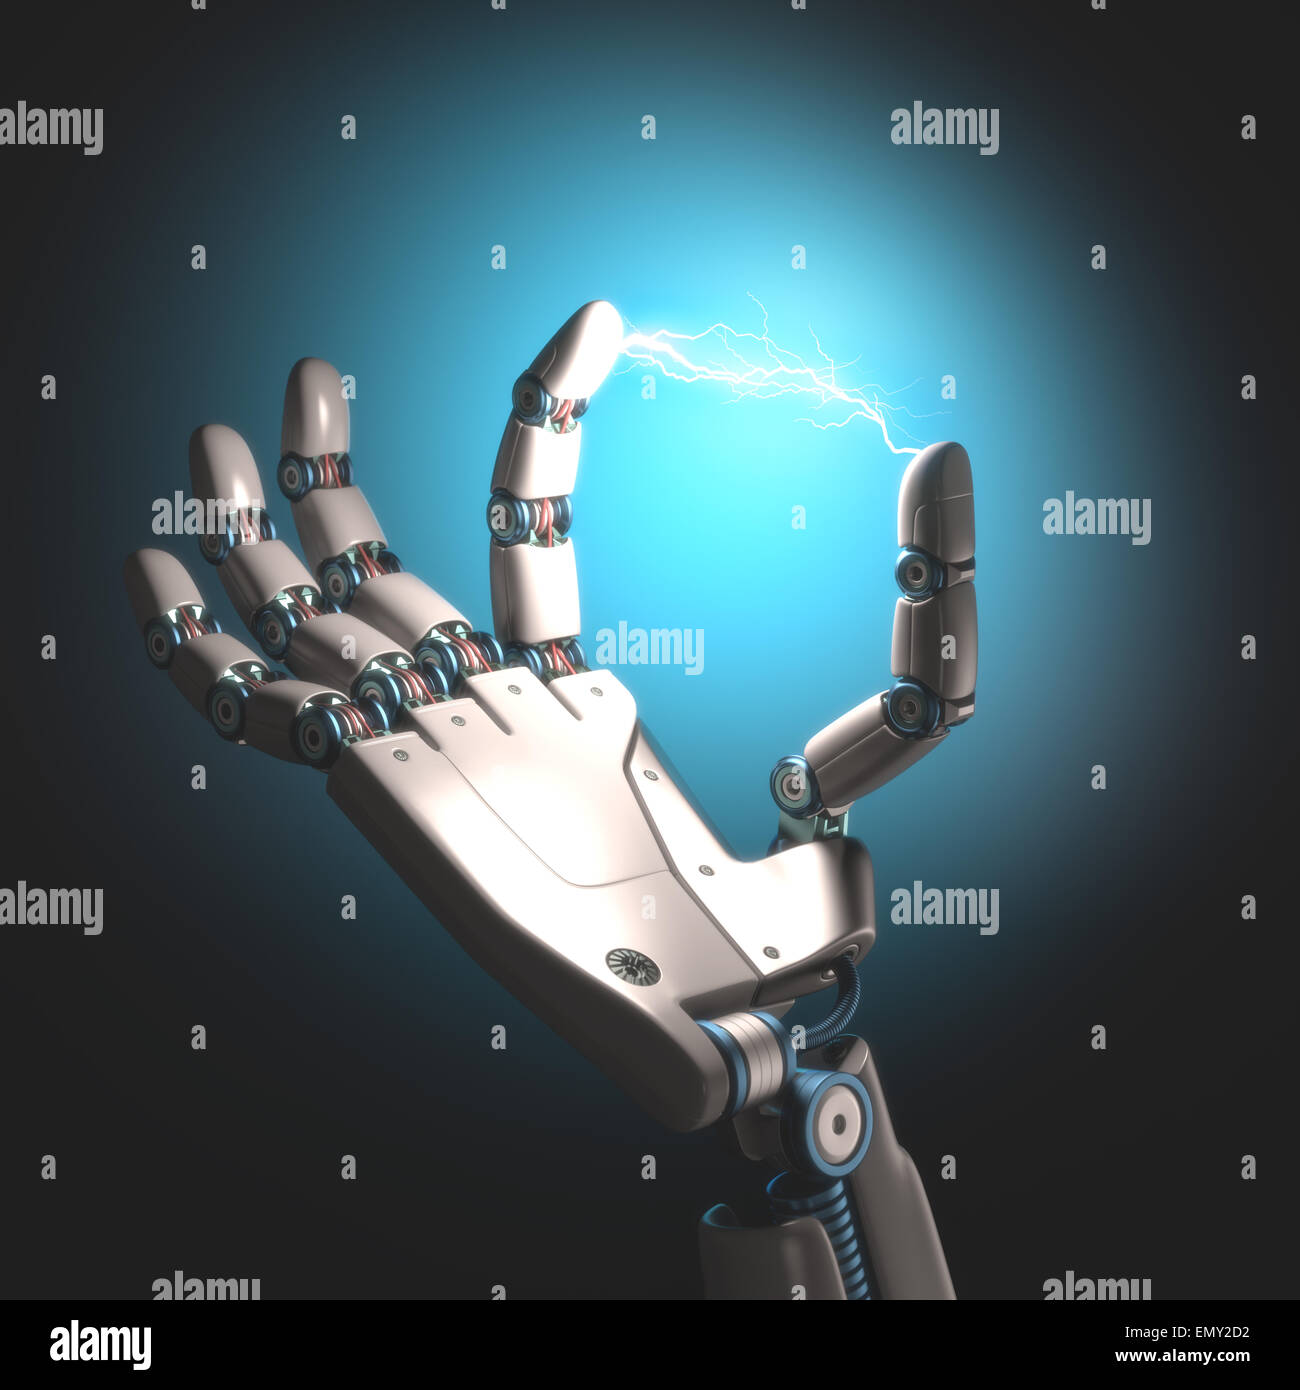 Robot hand with electricity between the toes. - Stock Image